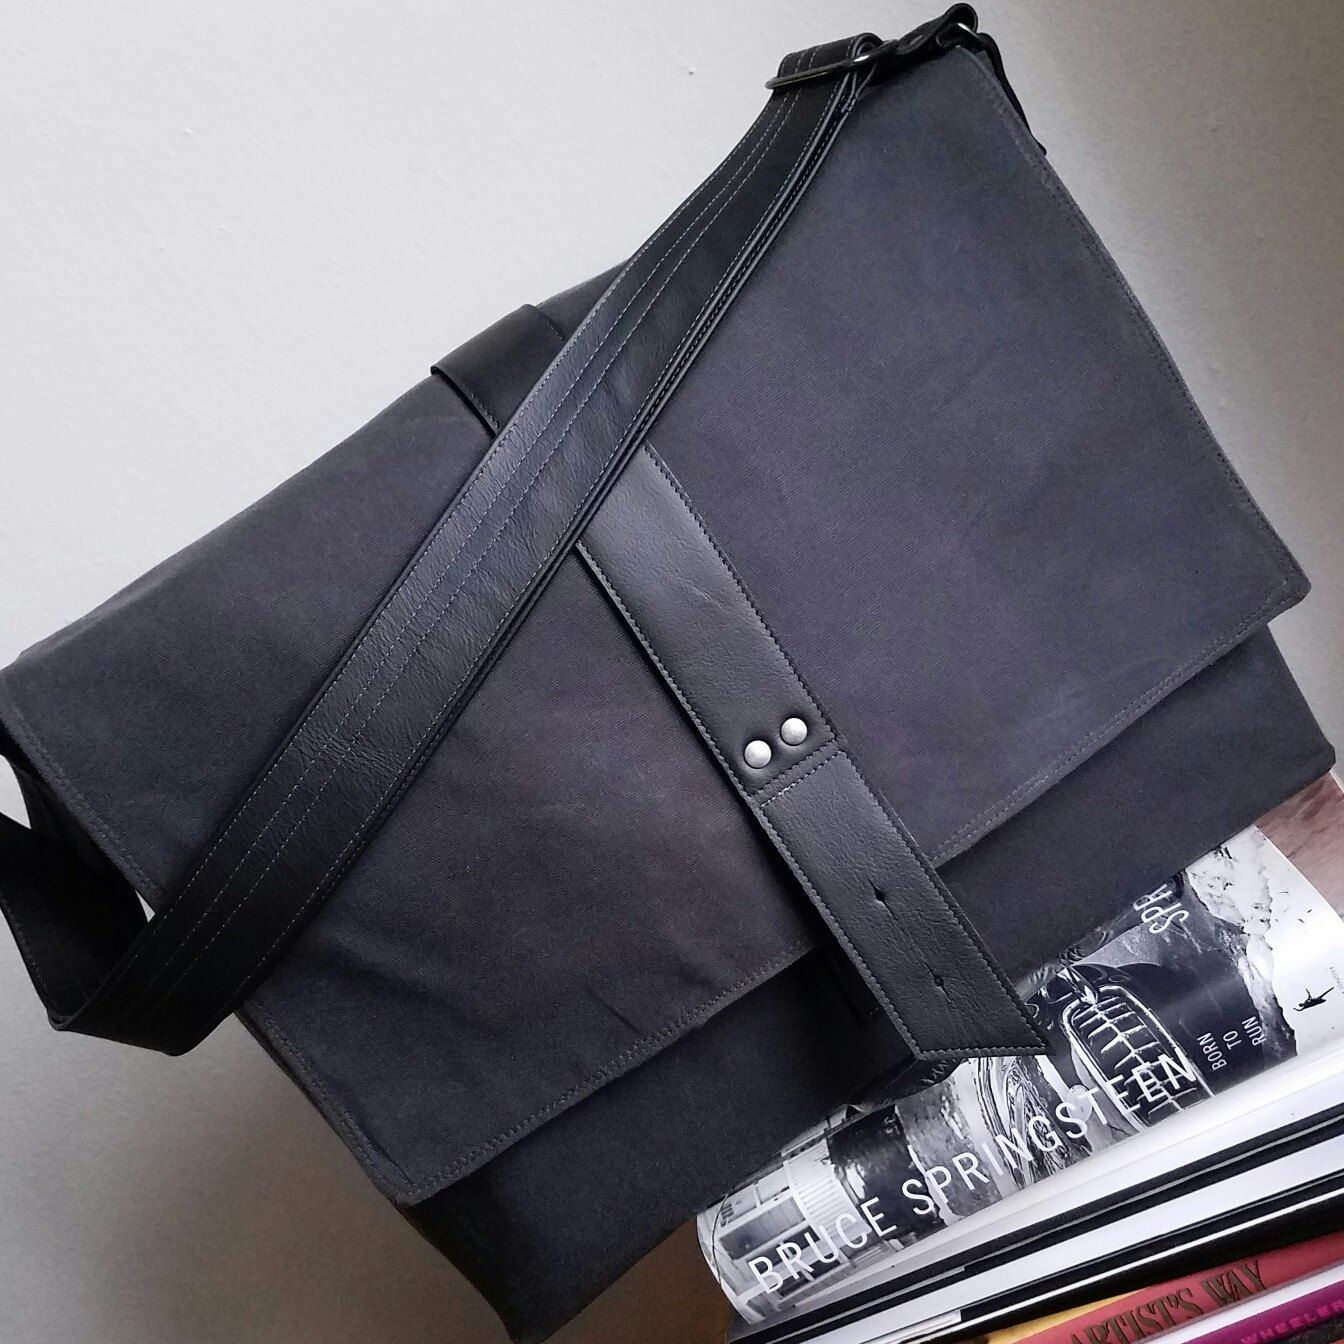 911afed76e4 ... Laptop Sleeves, and more! A handsome, understated take on the waxed  canvas Sloane Messenger  Charcoal with Black leather